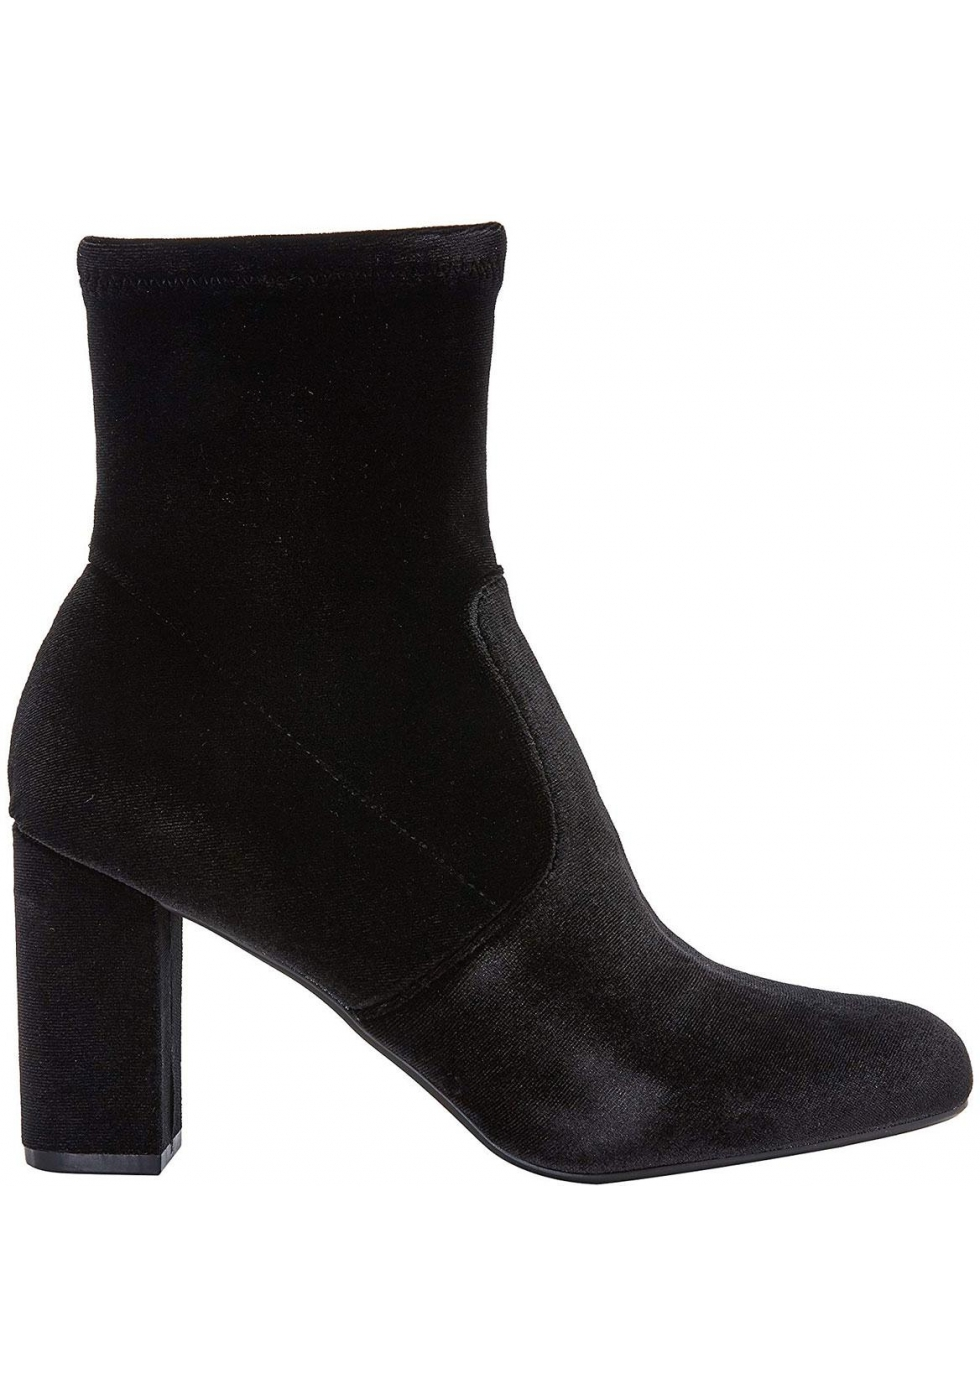 9362c75a60a Steve Madden Women's block heels ankle boots in black velvet with ...